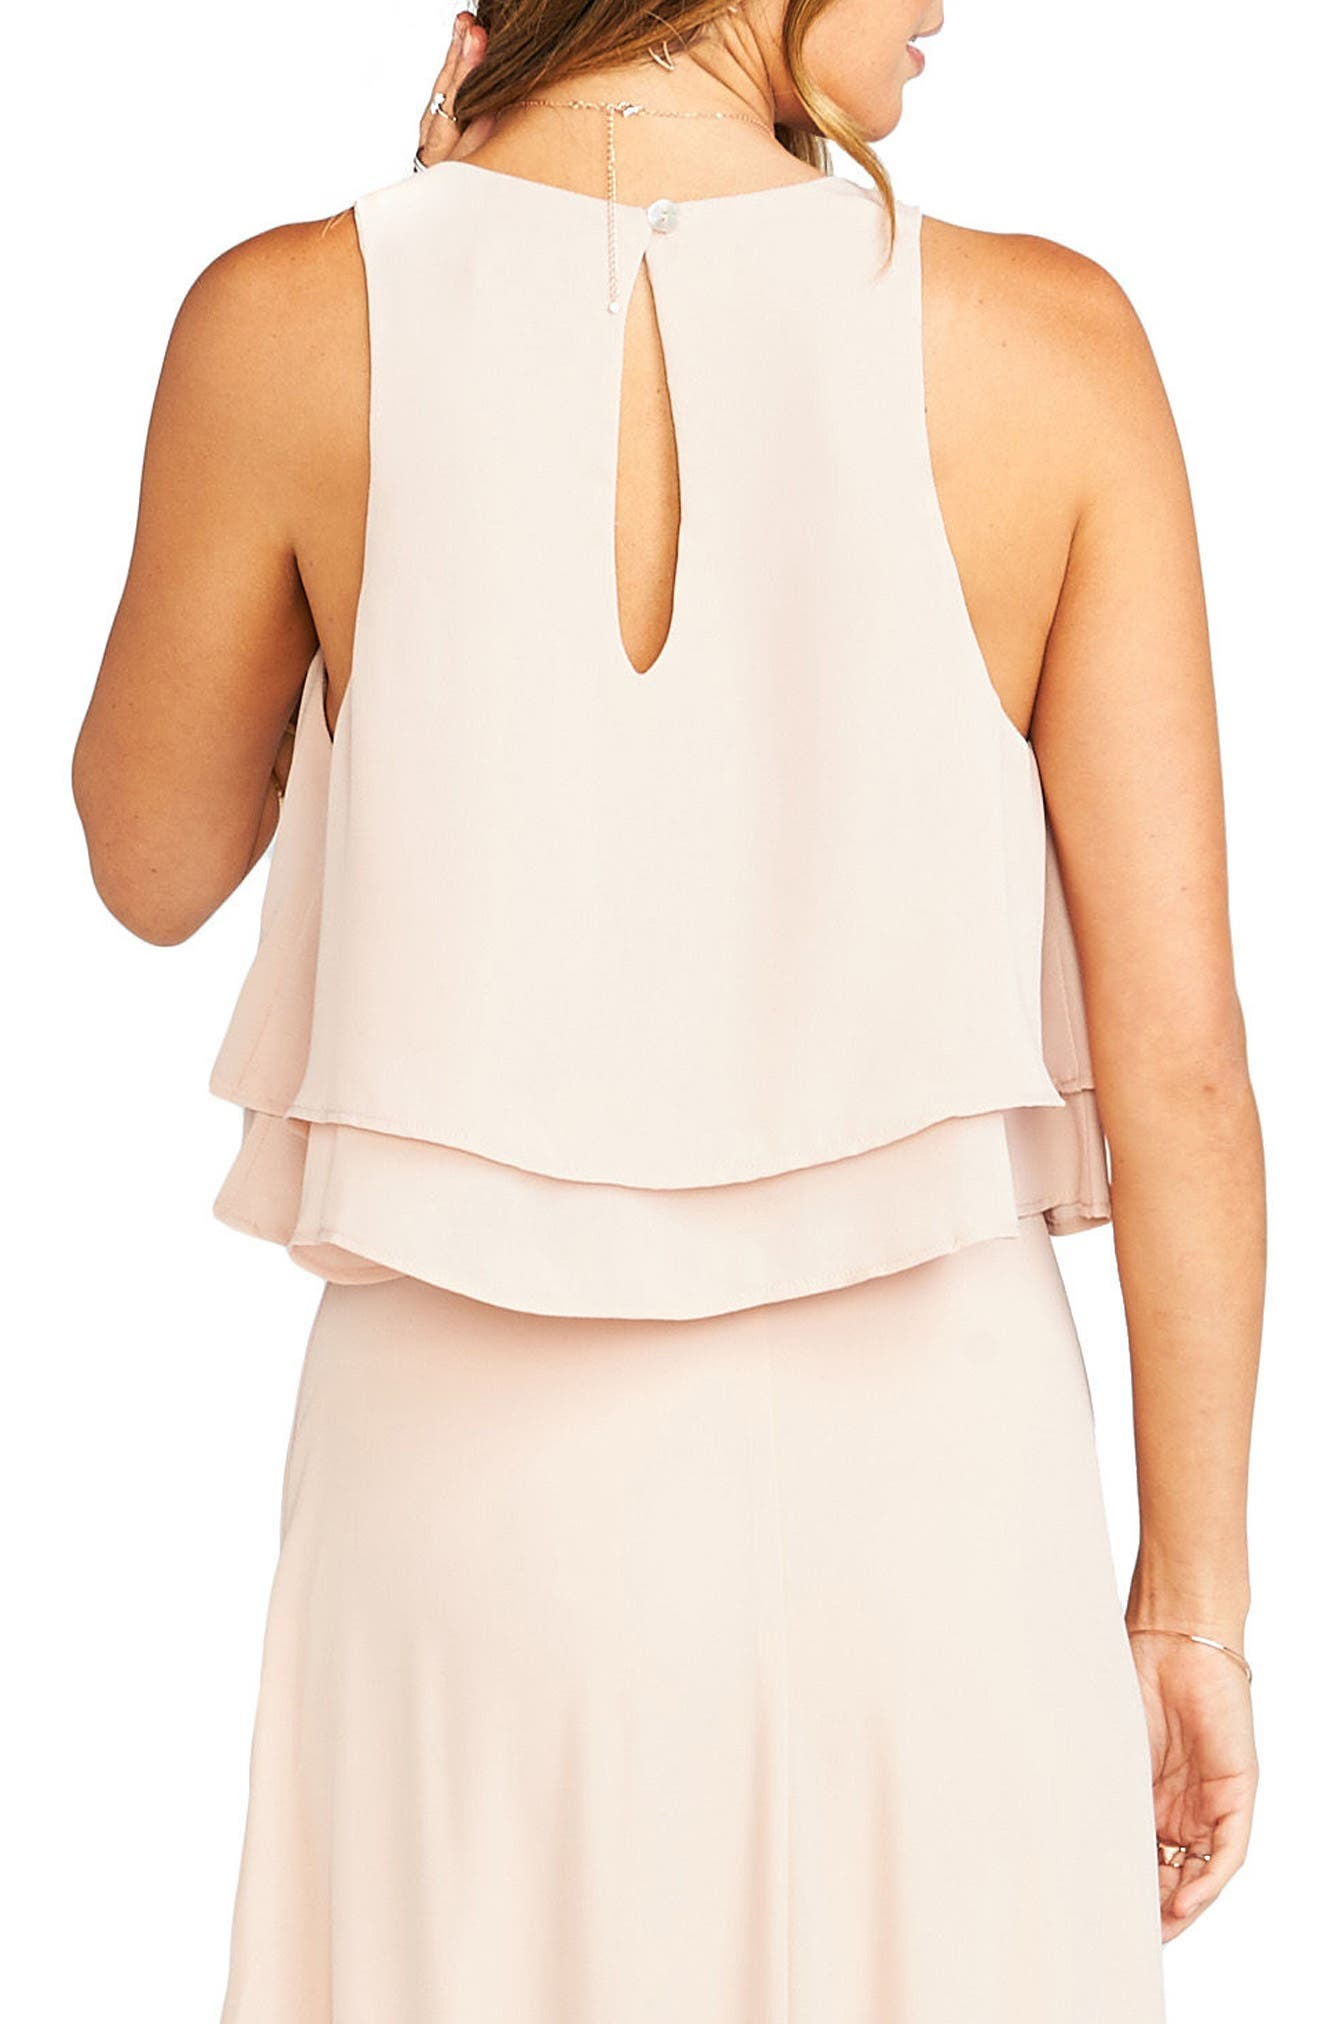 'King' Tiered Chiffon Crop Top,                             Alternate thumbnail 2, color,                             684